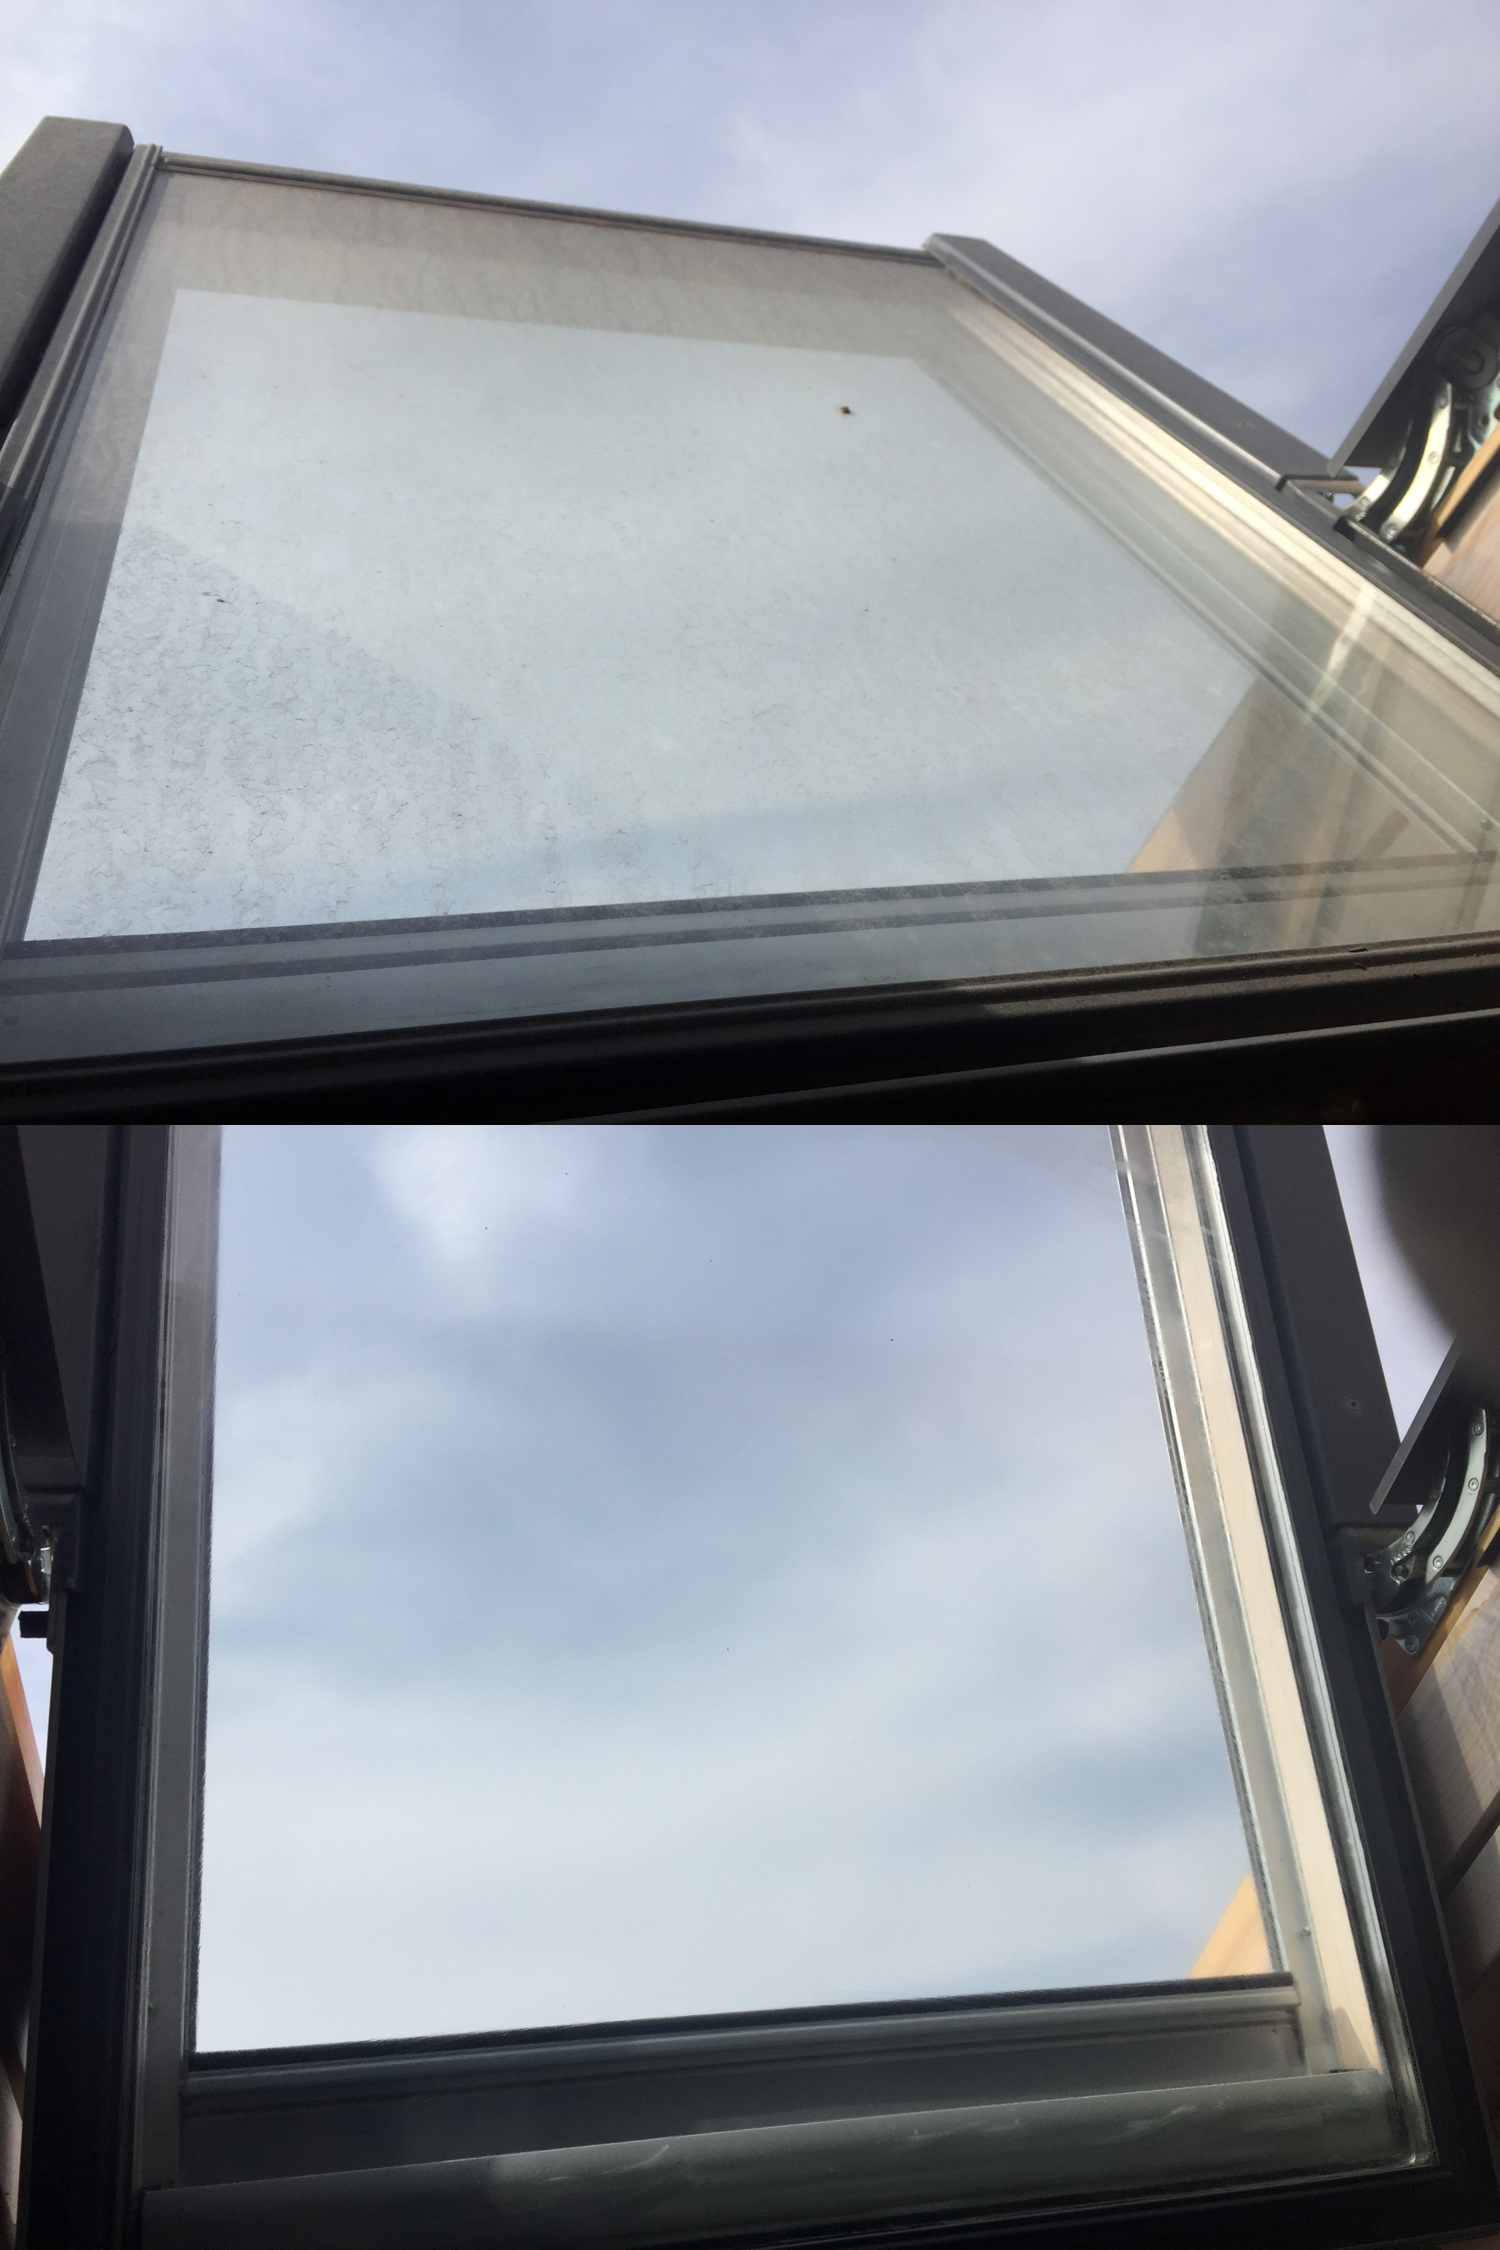 Picture of Window Cleaning Spray